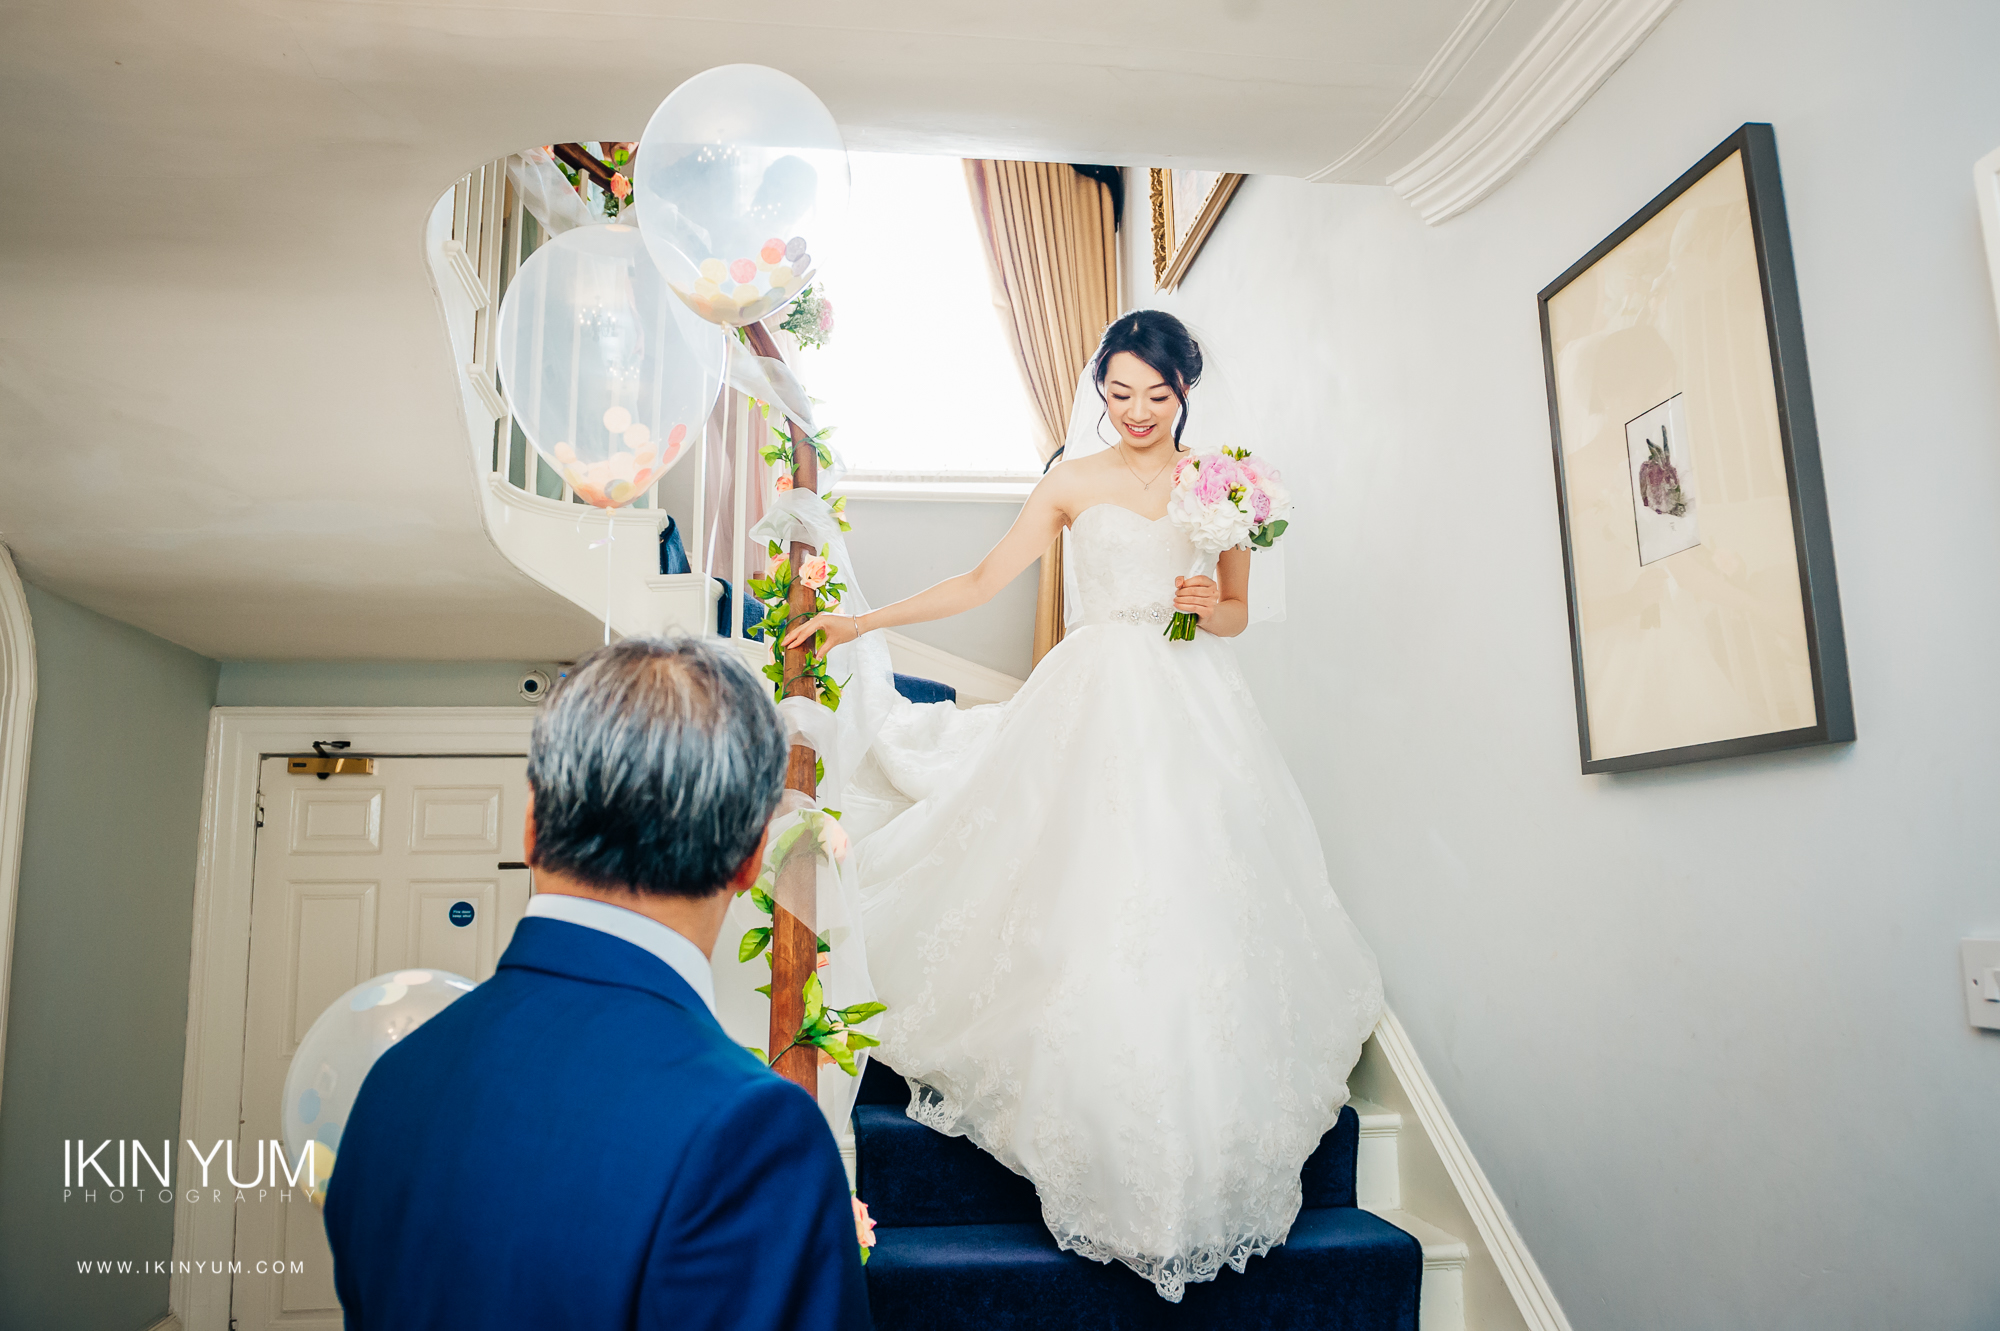 Sylvianne & Chun Wedding Day - Ikin Yum Photography-072.jpg